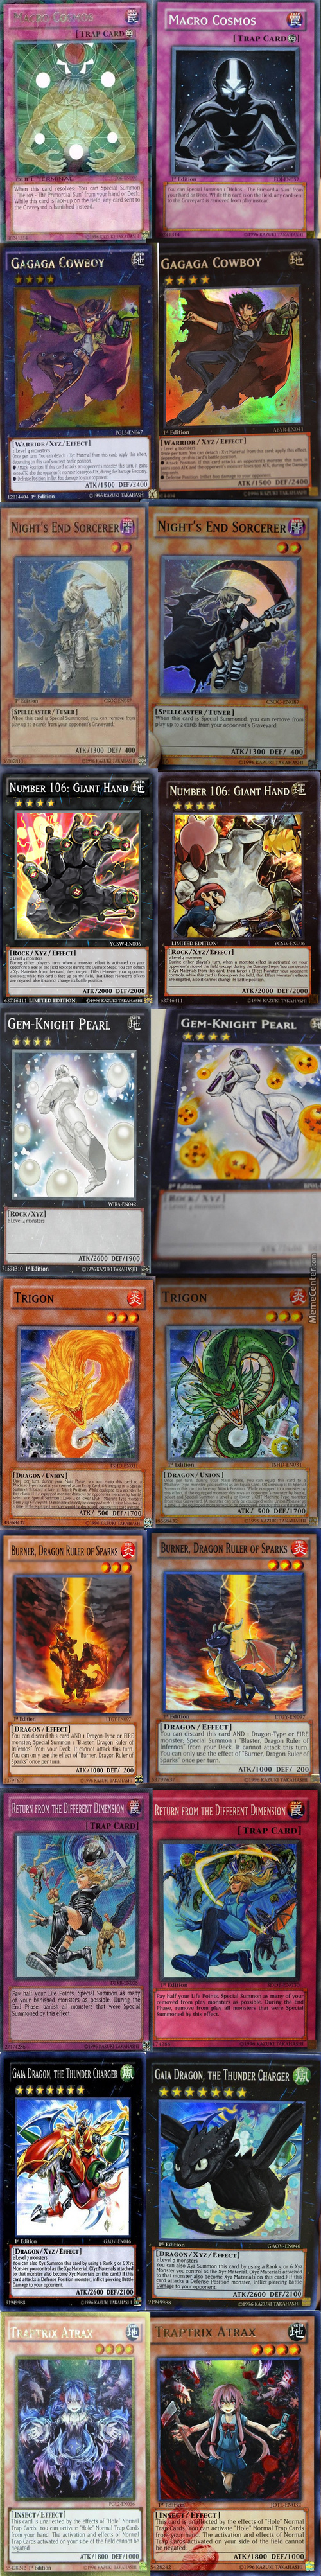 Altered Artwork Yugioh Edition By Amanda Lapalme